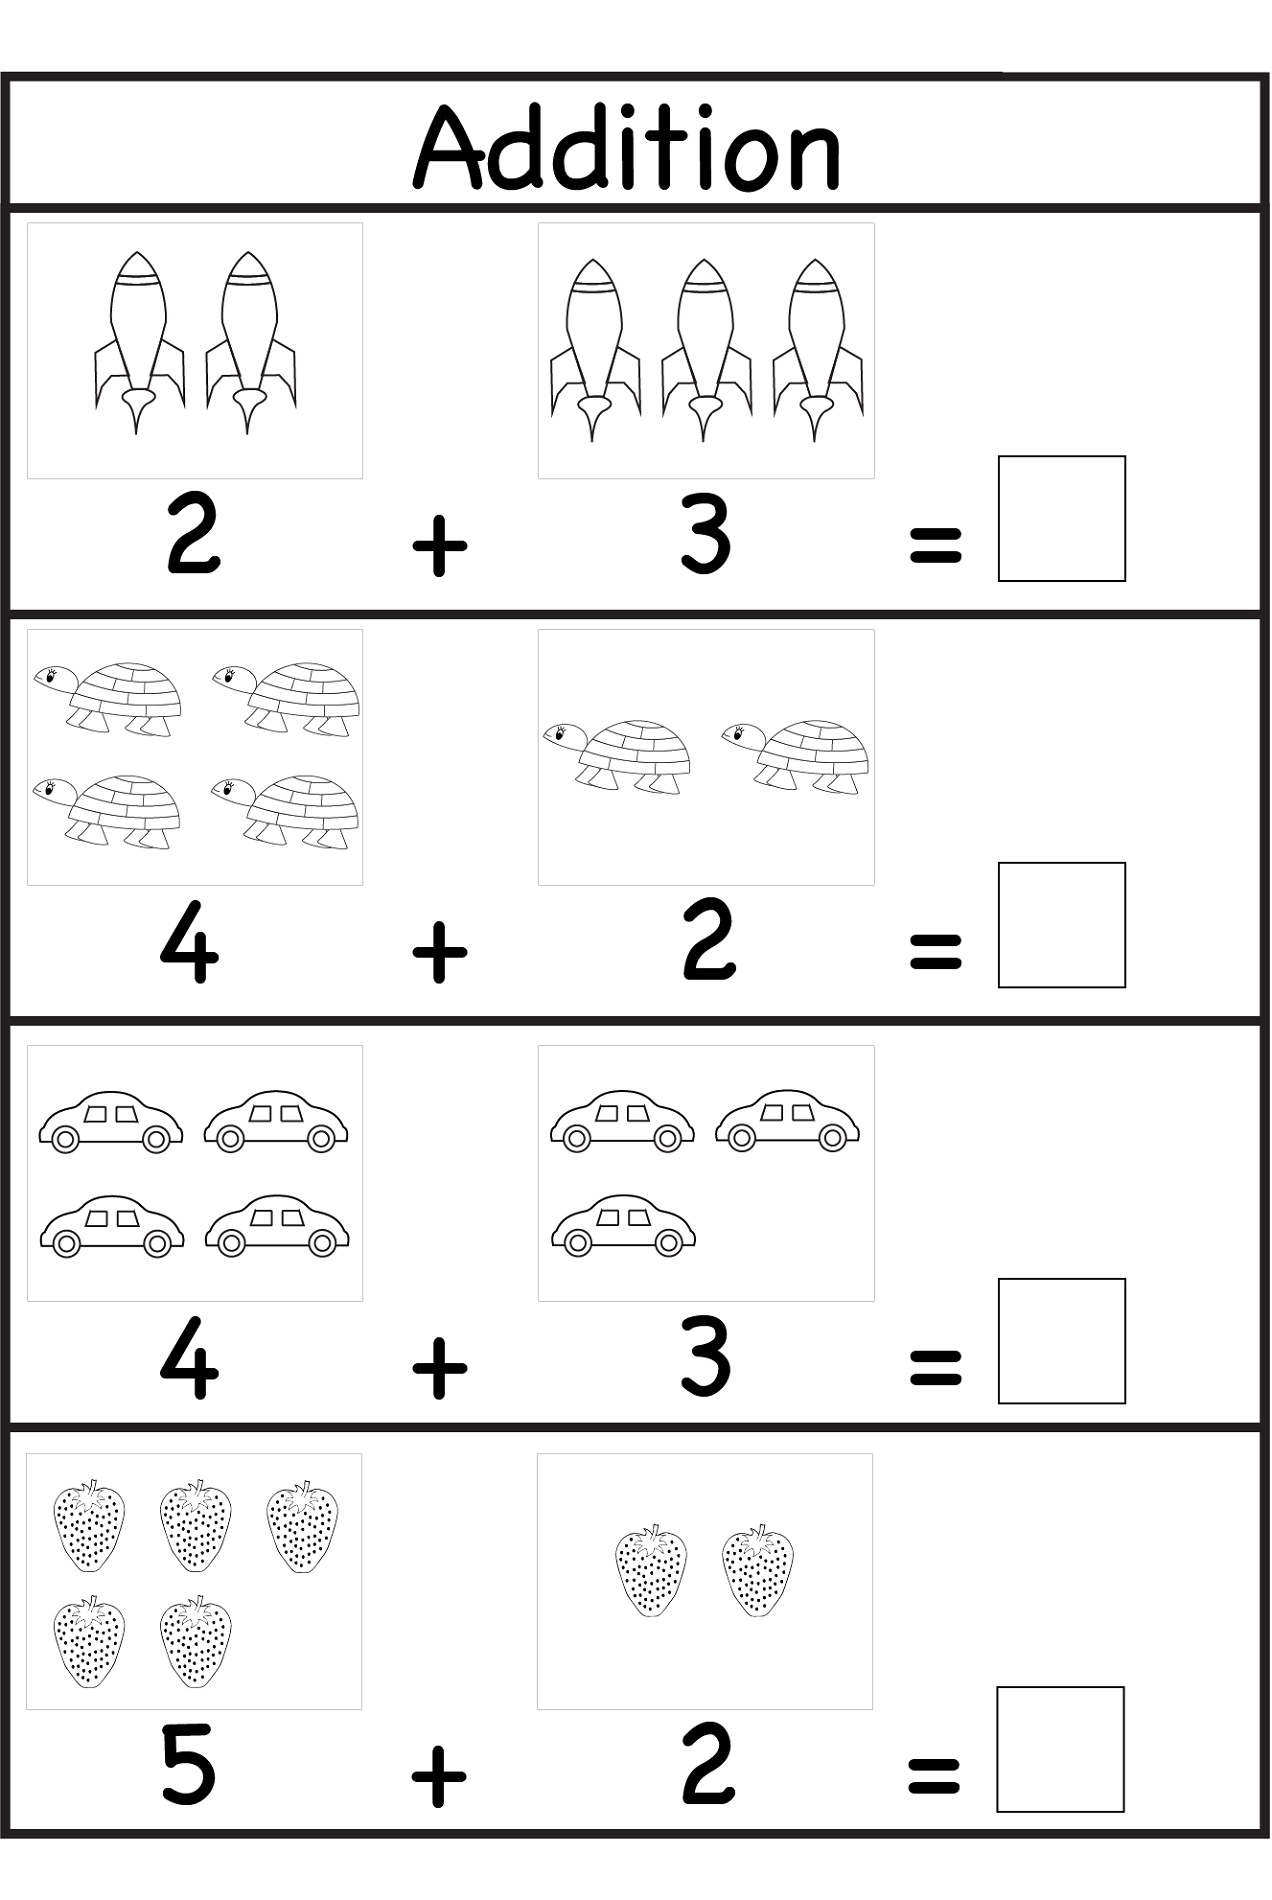 Worksheet Free Preschool free preschool printable activity shelter printables addition